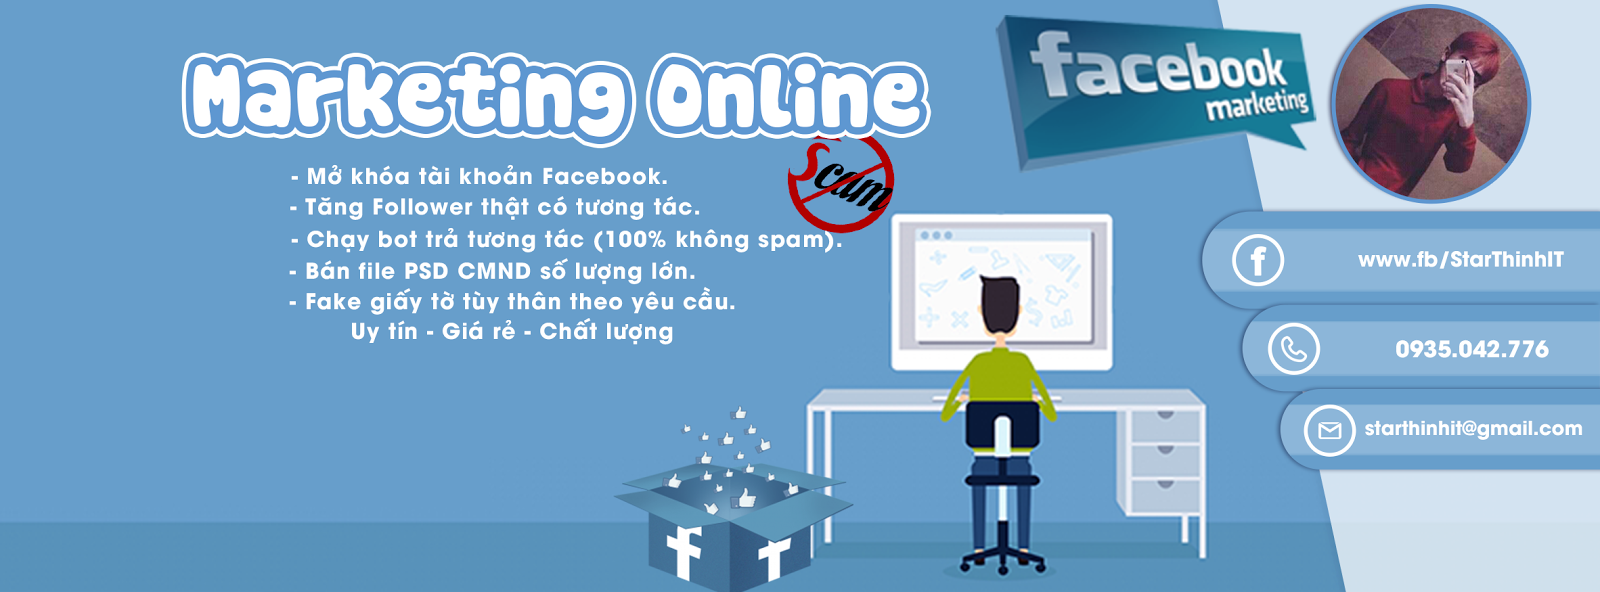 [PSD Ảnh Bìa] Ảnh Bìa Marketing Online Facebook đẹp